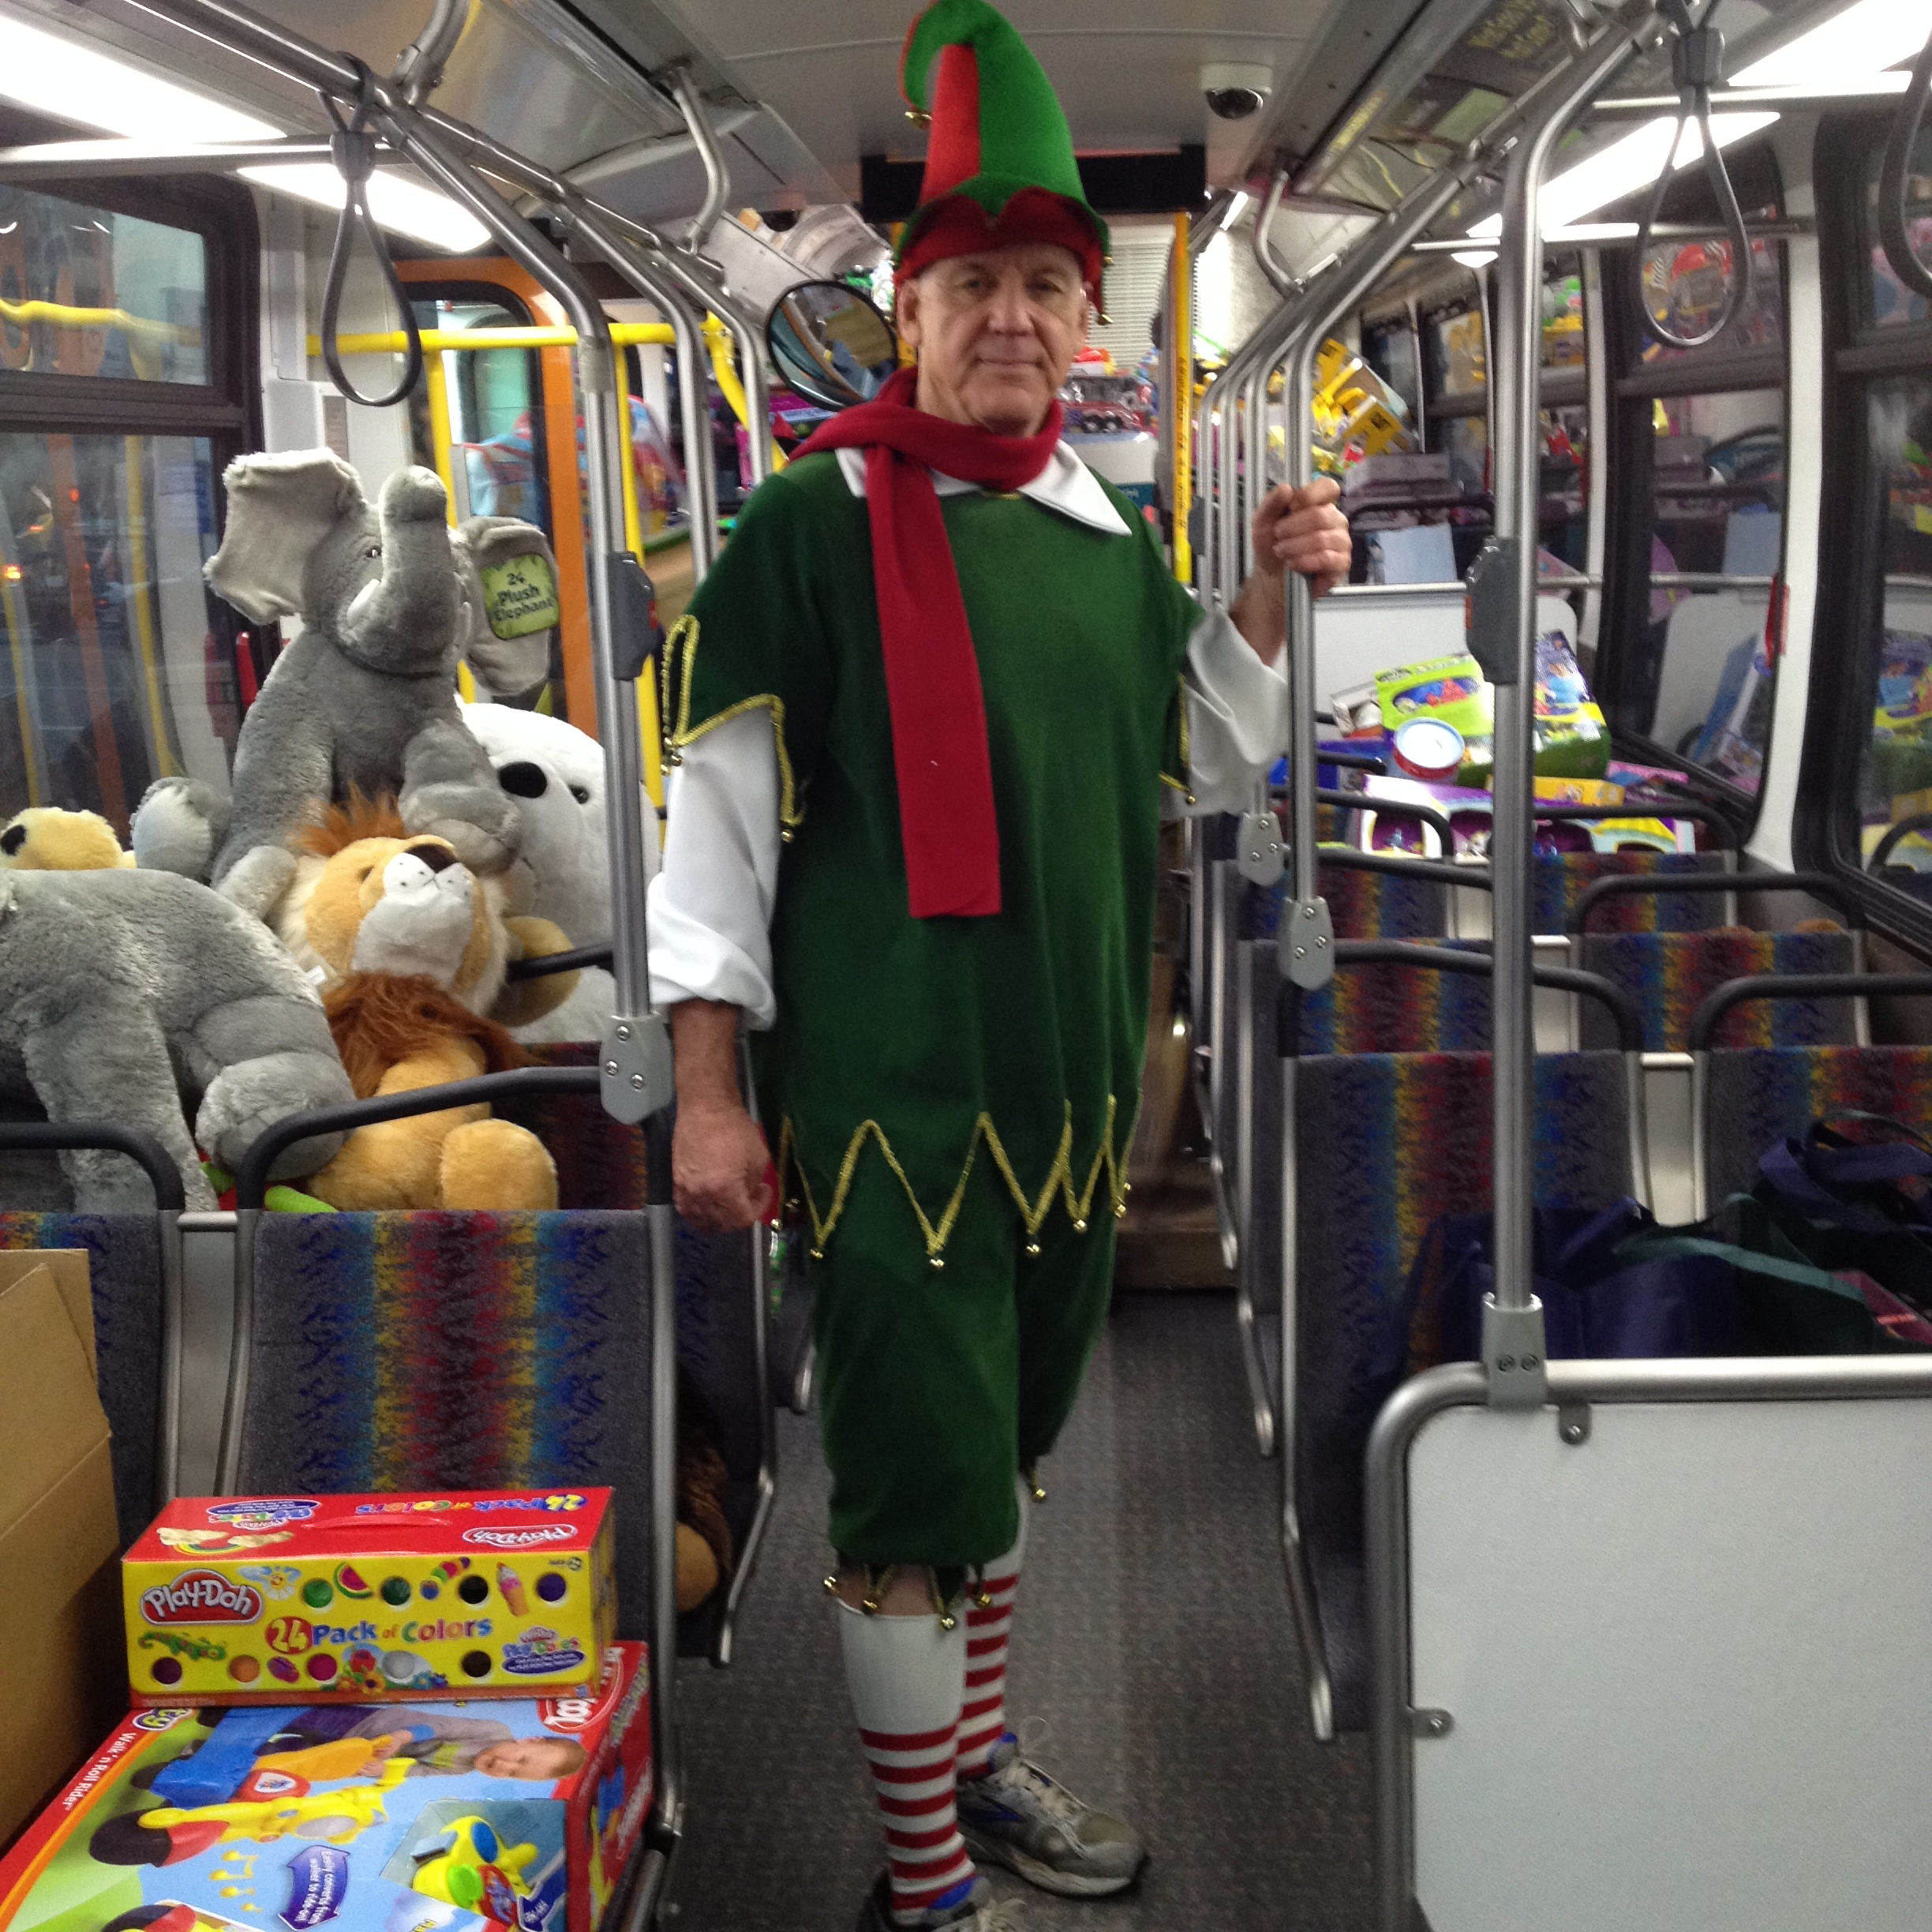 Abc s garth kemp all dressed up at the stuff a bus event photo jose